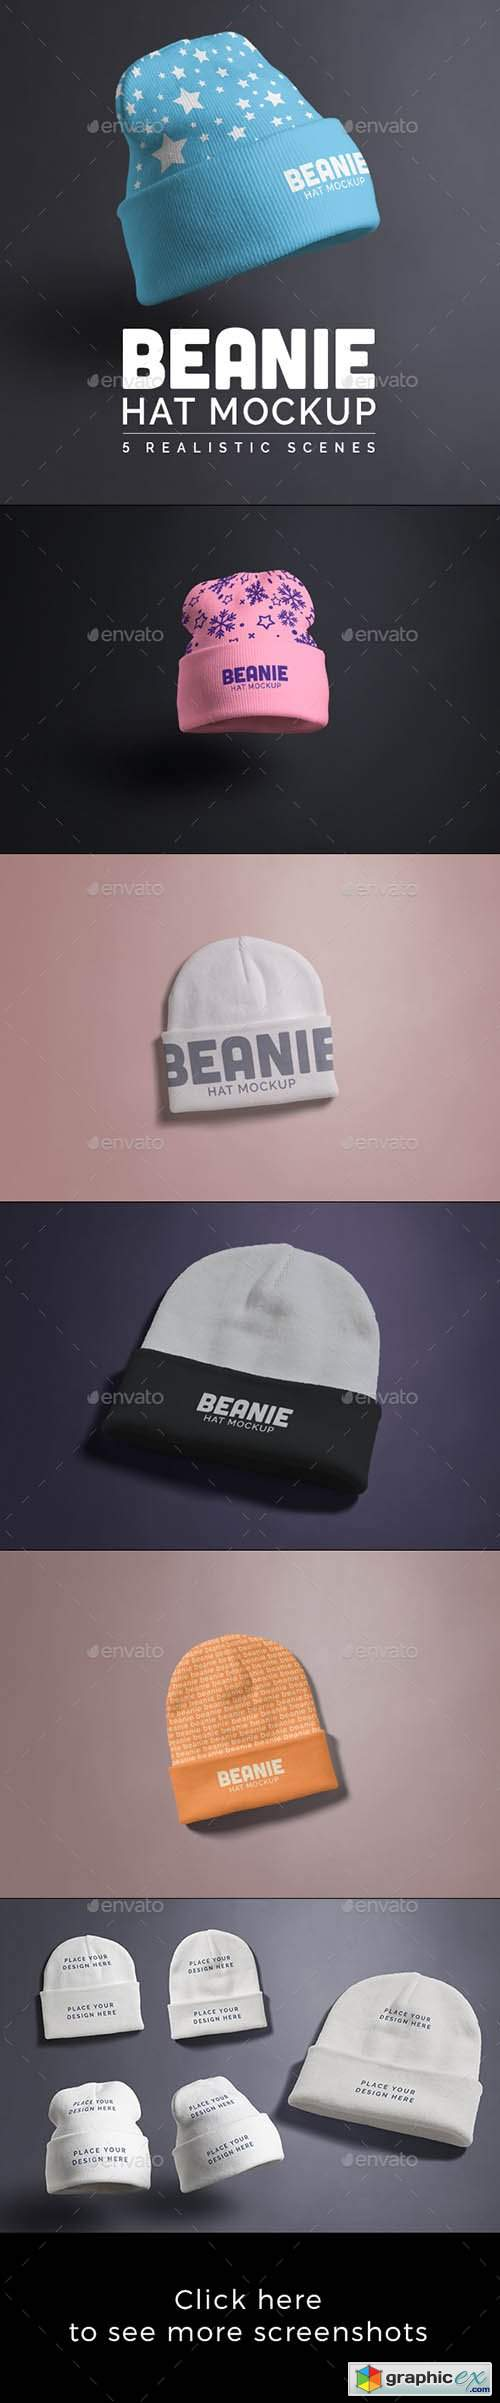 Beanie Hat Mock-up